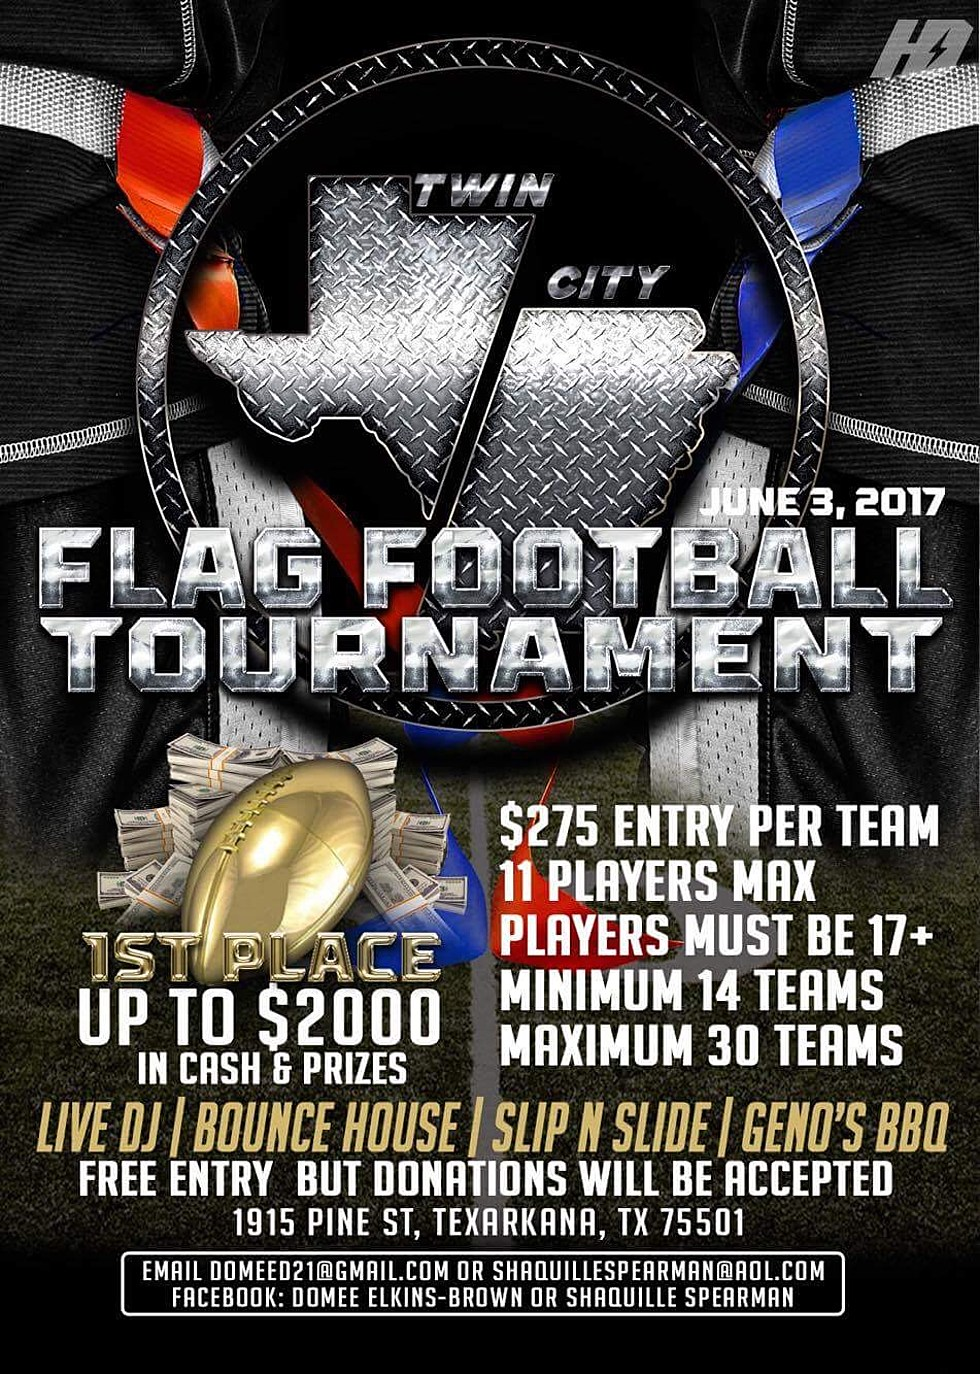 Twin City 7 On 7 Flag Football Tournament